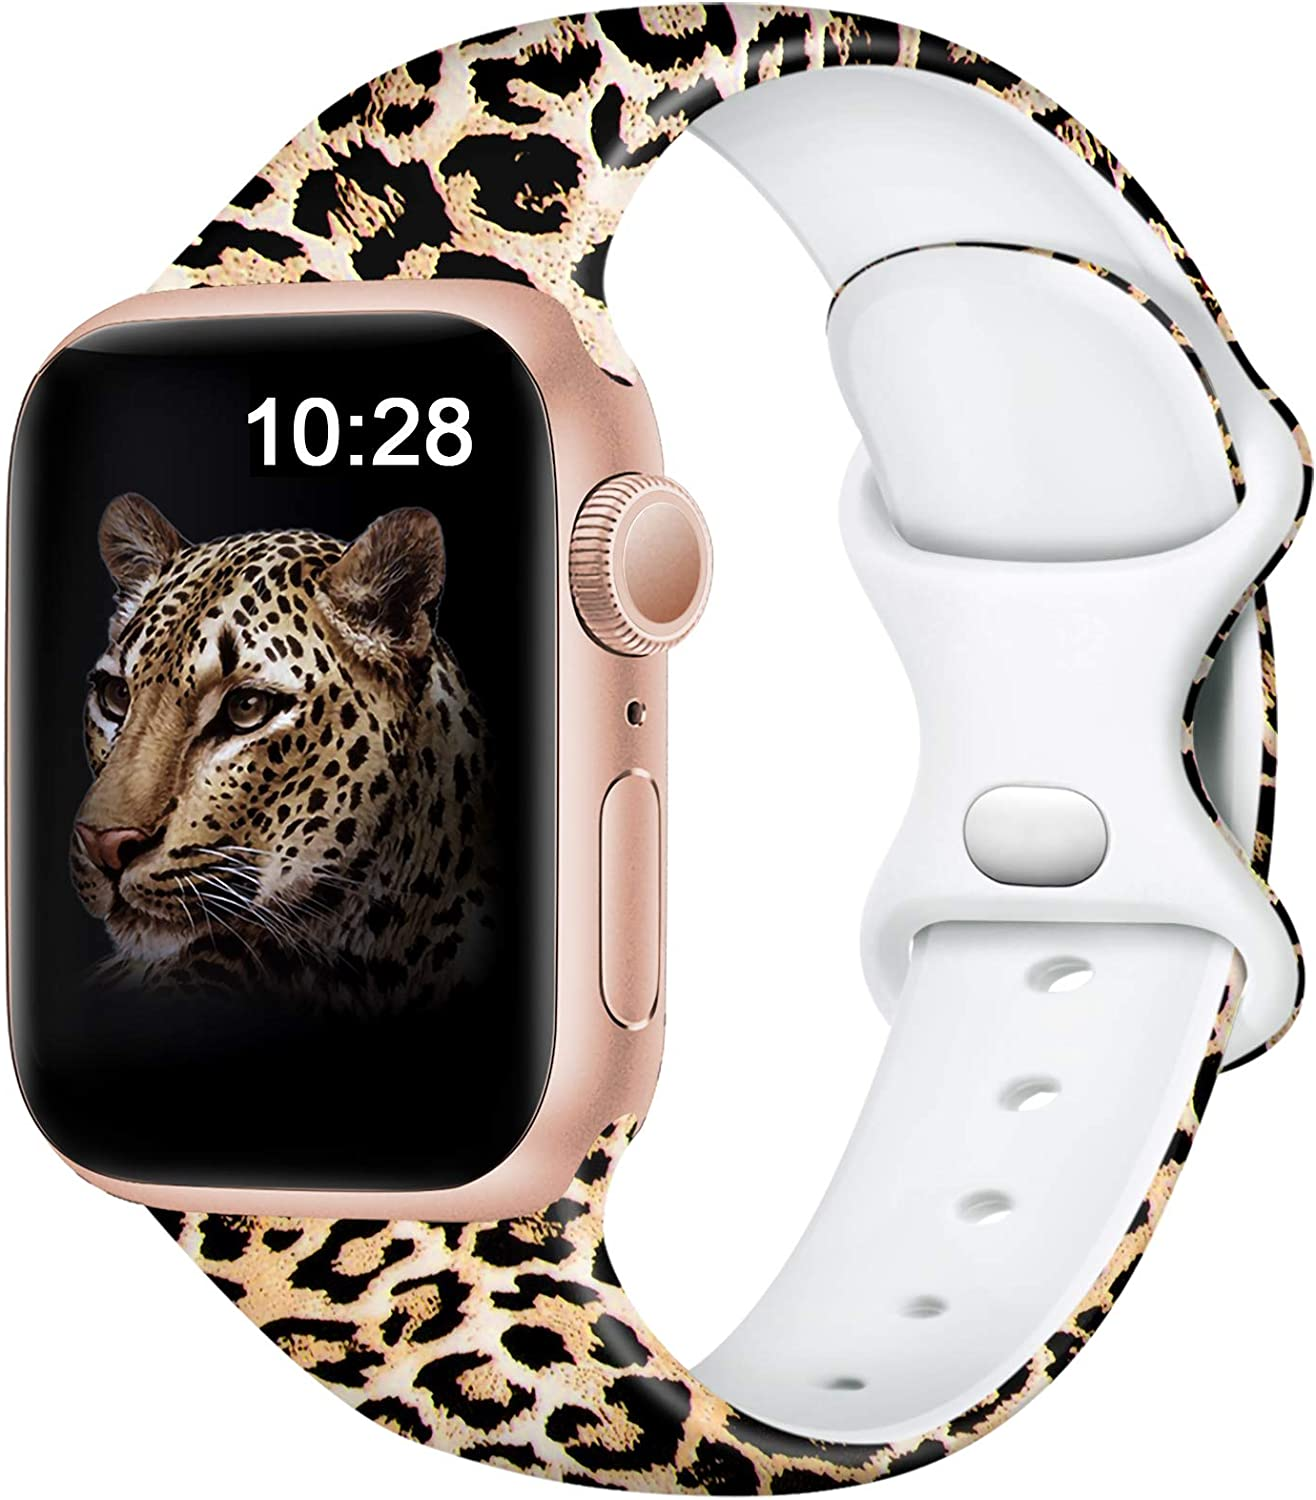 Easuny Leopard Bands Compatible for Apple Watch 40mm 38mm Womens Girls - Cute Fadeless Floral Soft Pattern Printed Silicone Replacement Wristband for iWatch SE & Series 6/5/4/3/2/1,Cheetah M/L